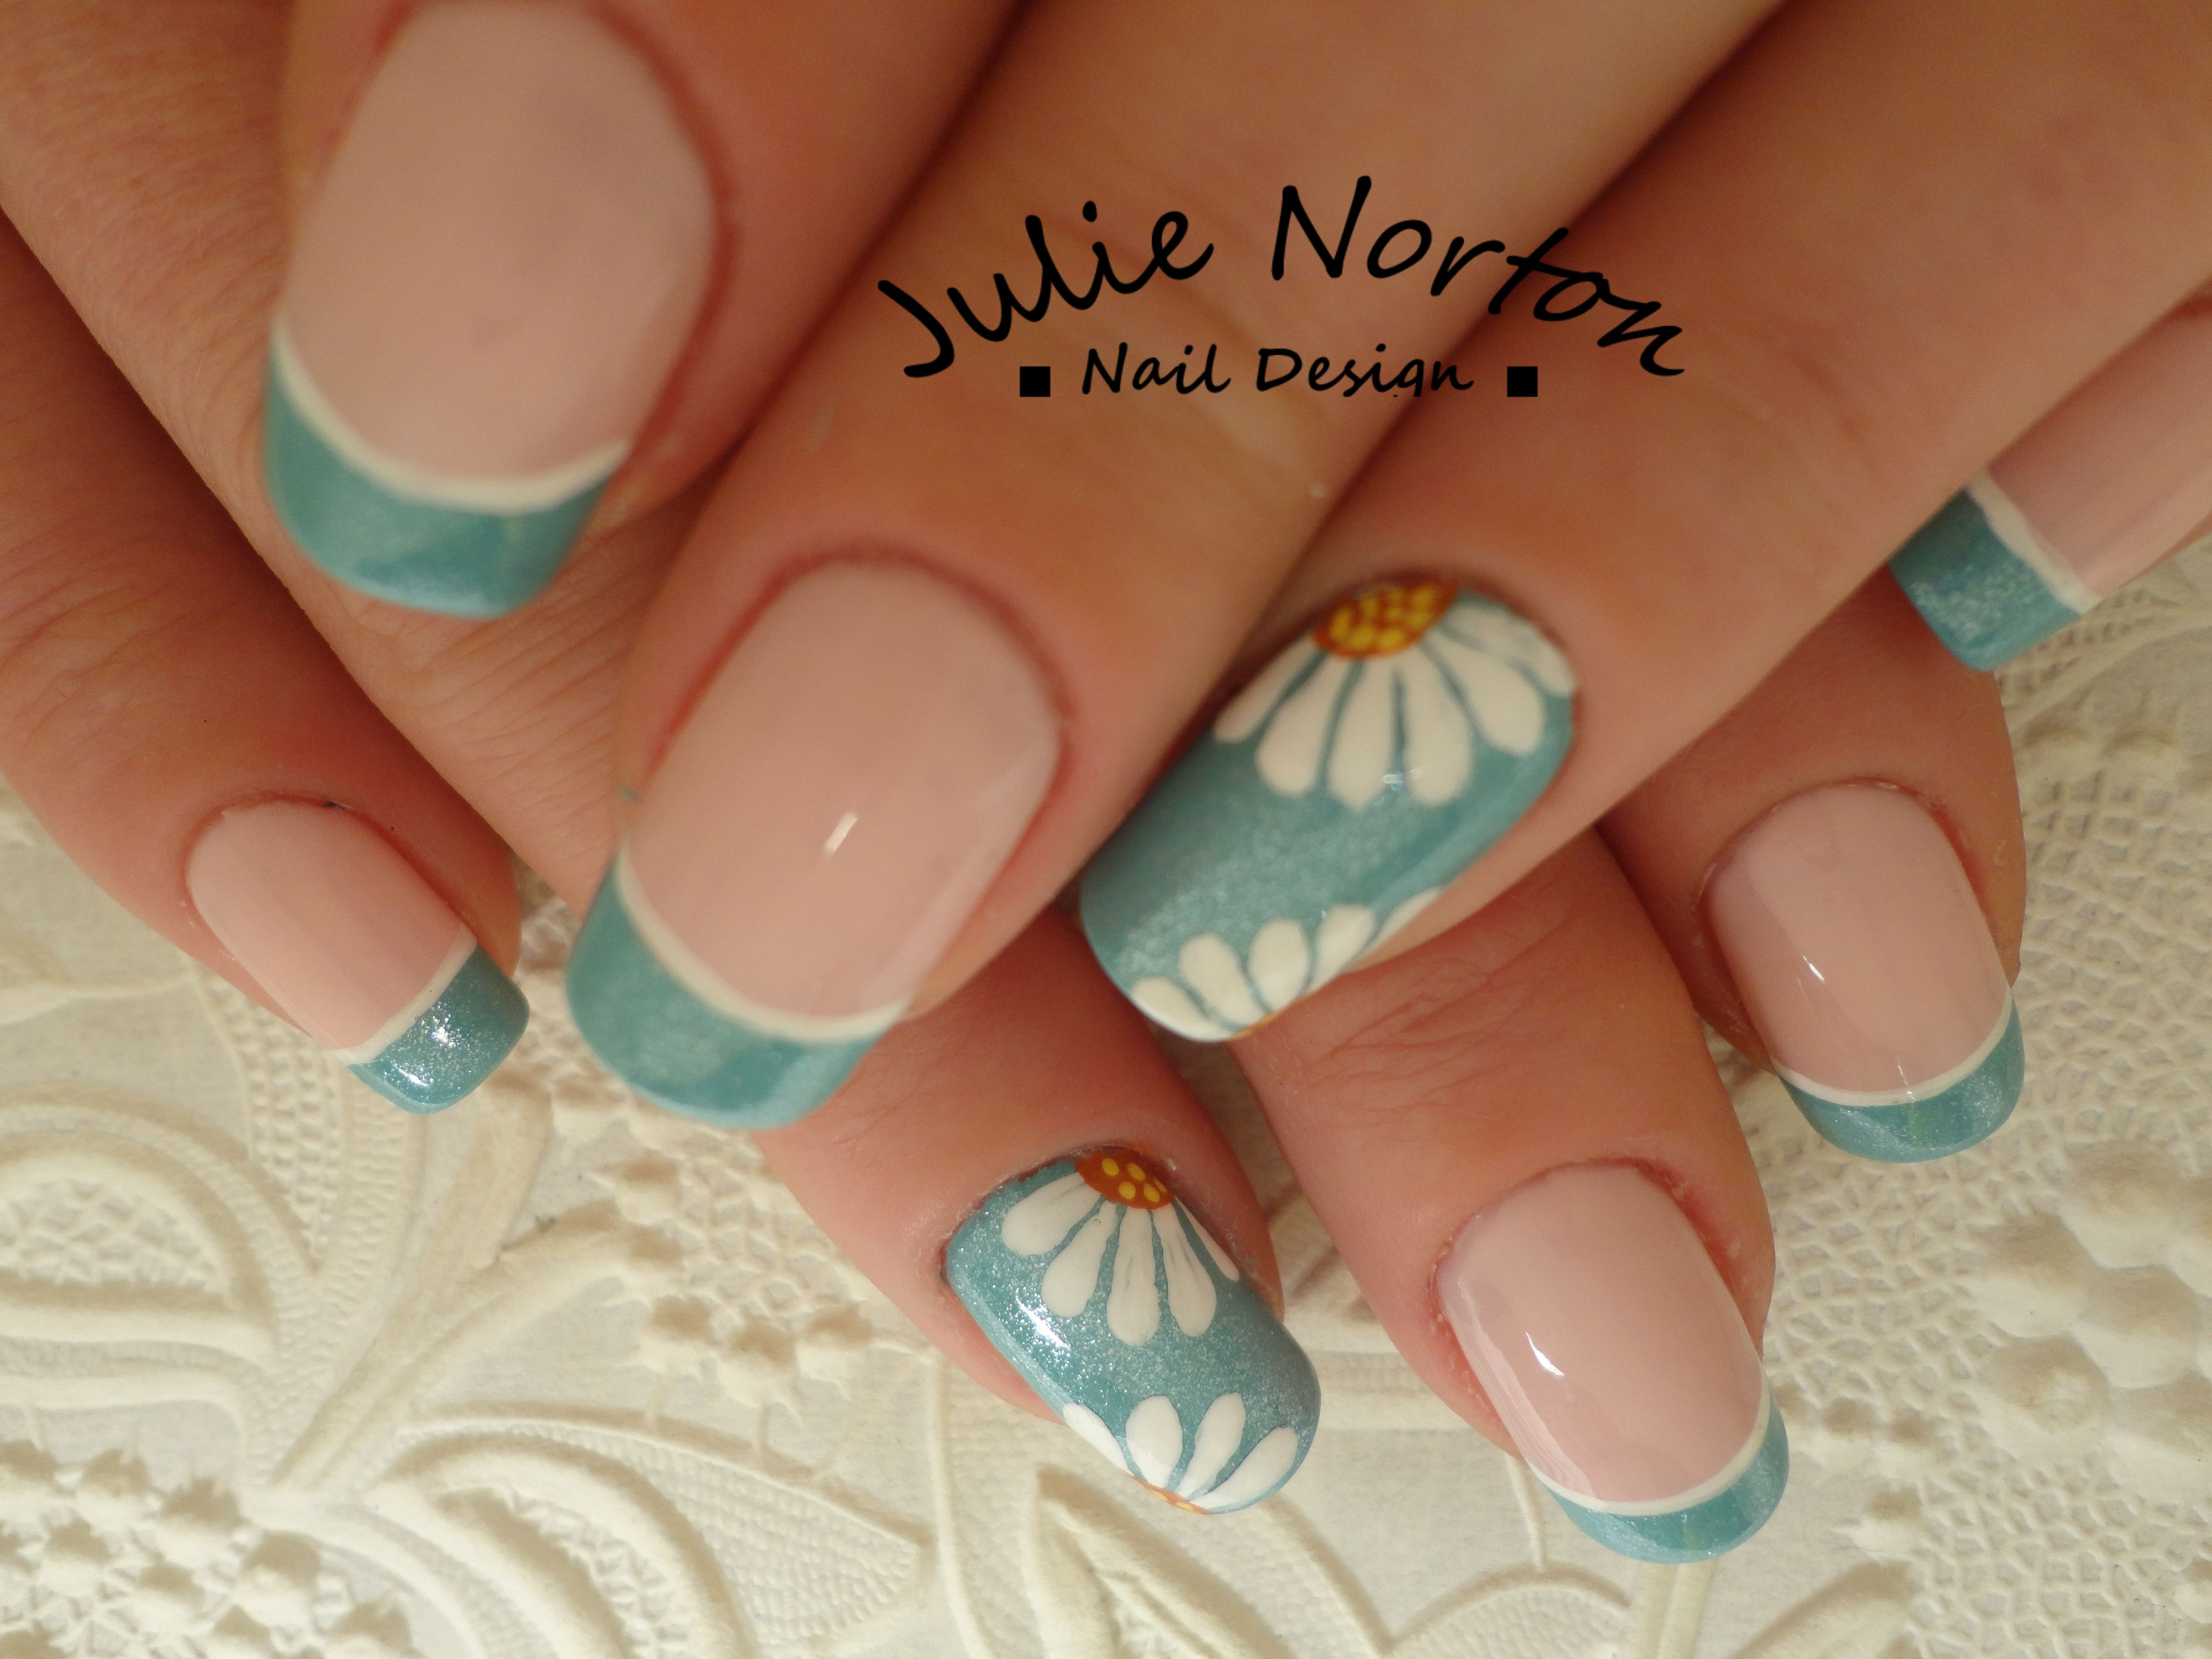 Images of Daisy Nail Designs - Lotki